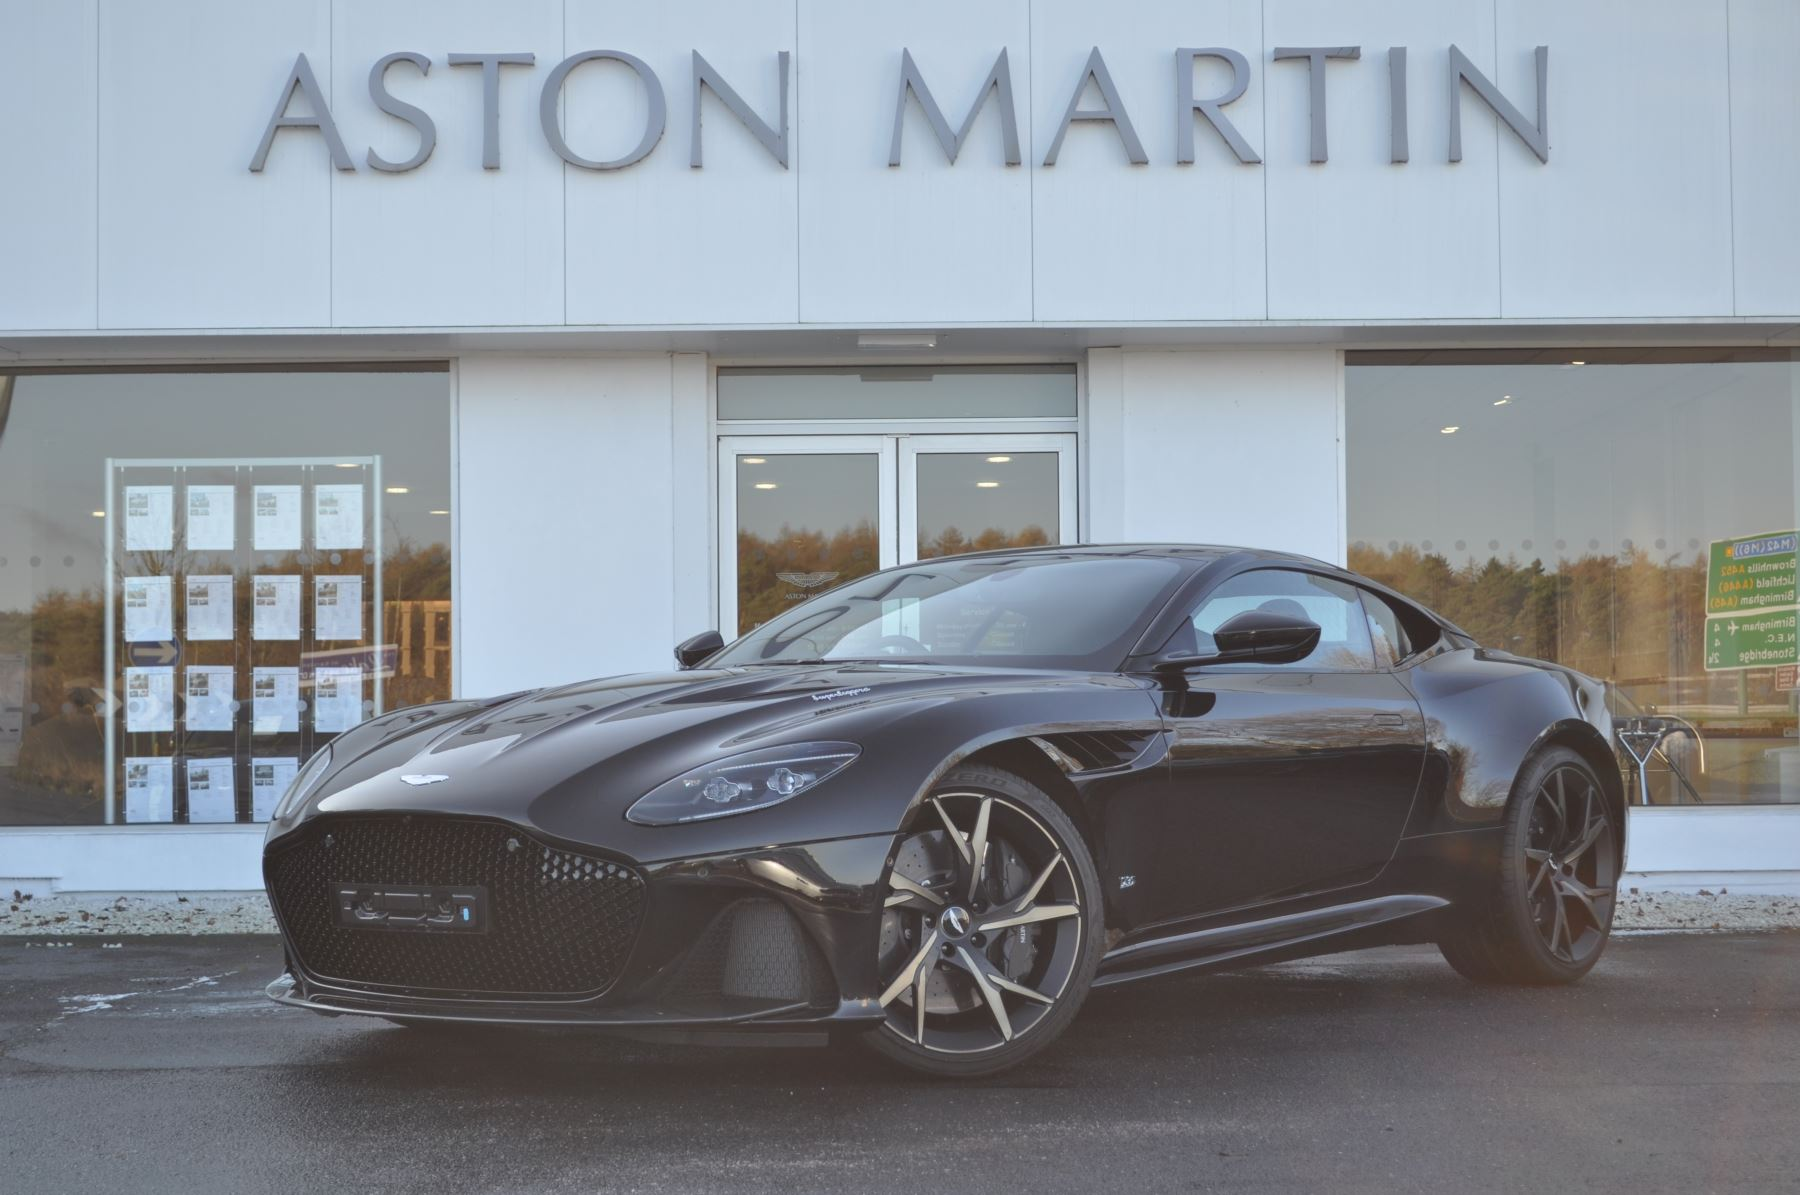 Aston Martin DBS V12 Superleggera Touchtronic 5.2 Automatic 2 door Coupe (18MY) image